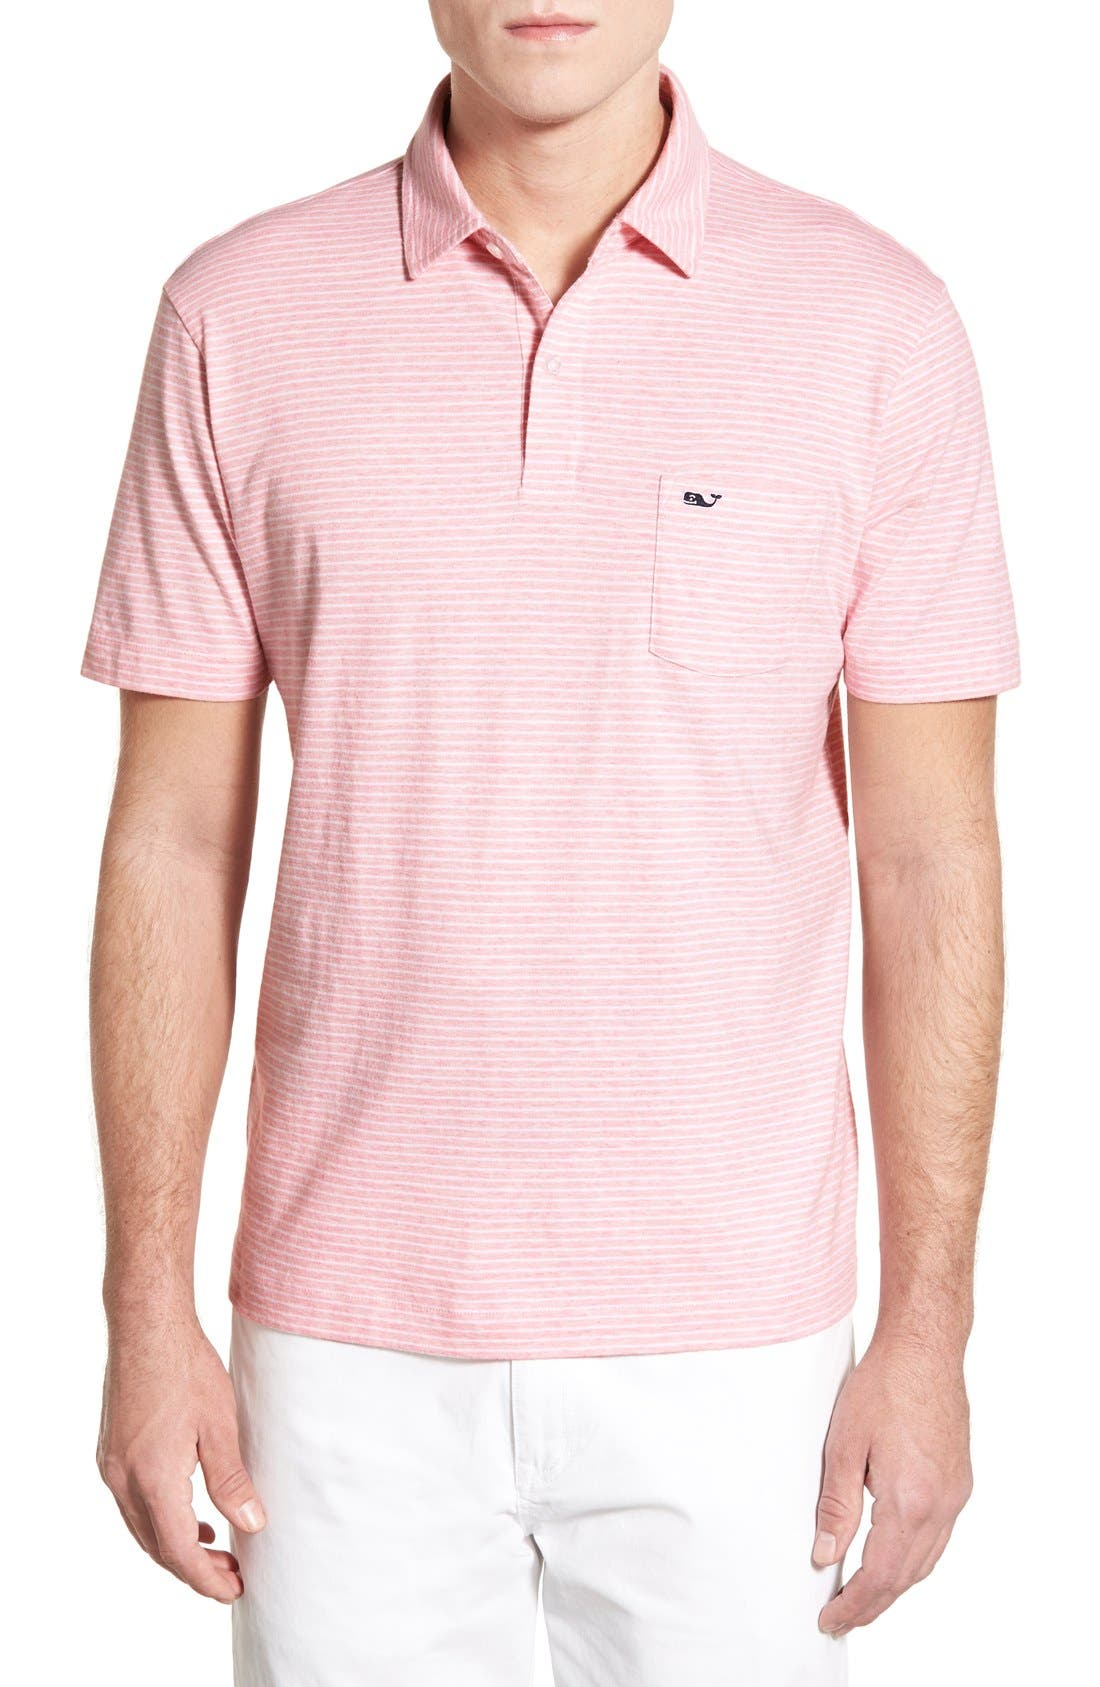 Alternate Image 1 Selected - Vineyard Vines 'Feeder Stripe' Pima Cotton Polo